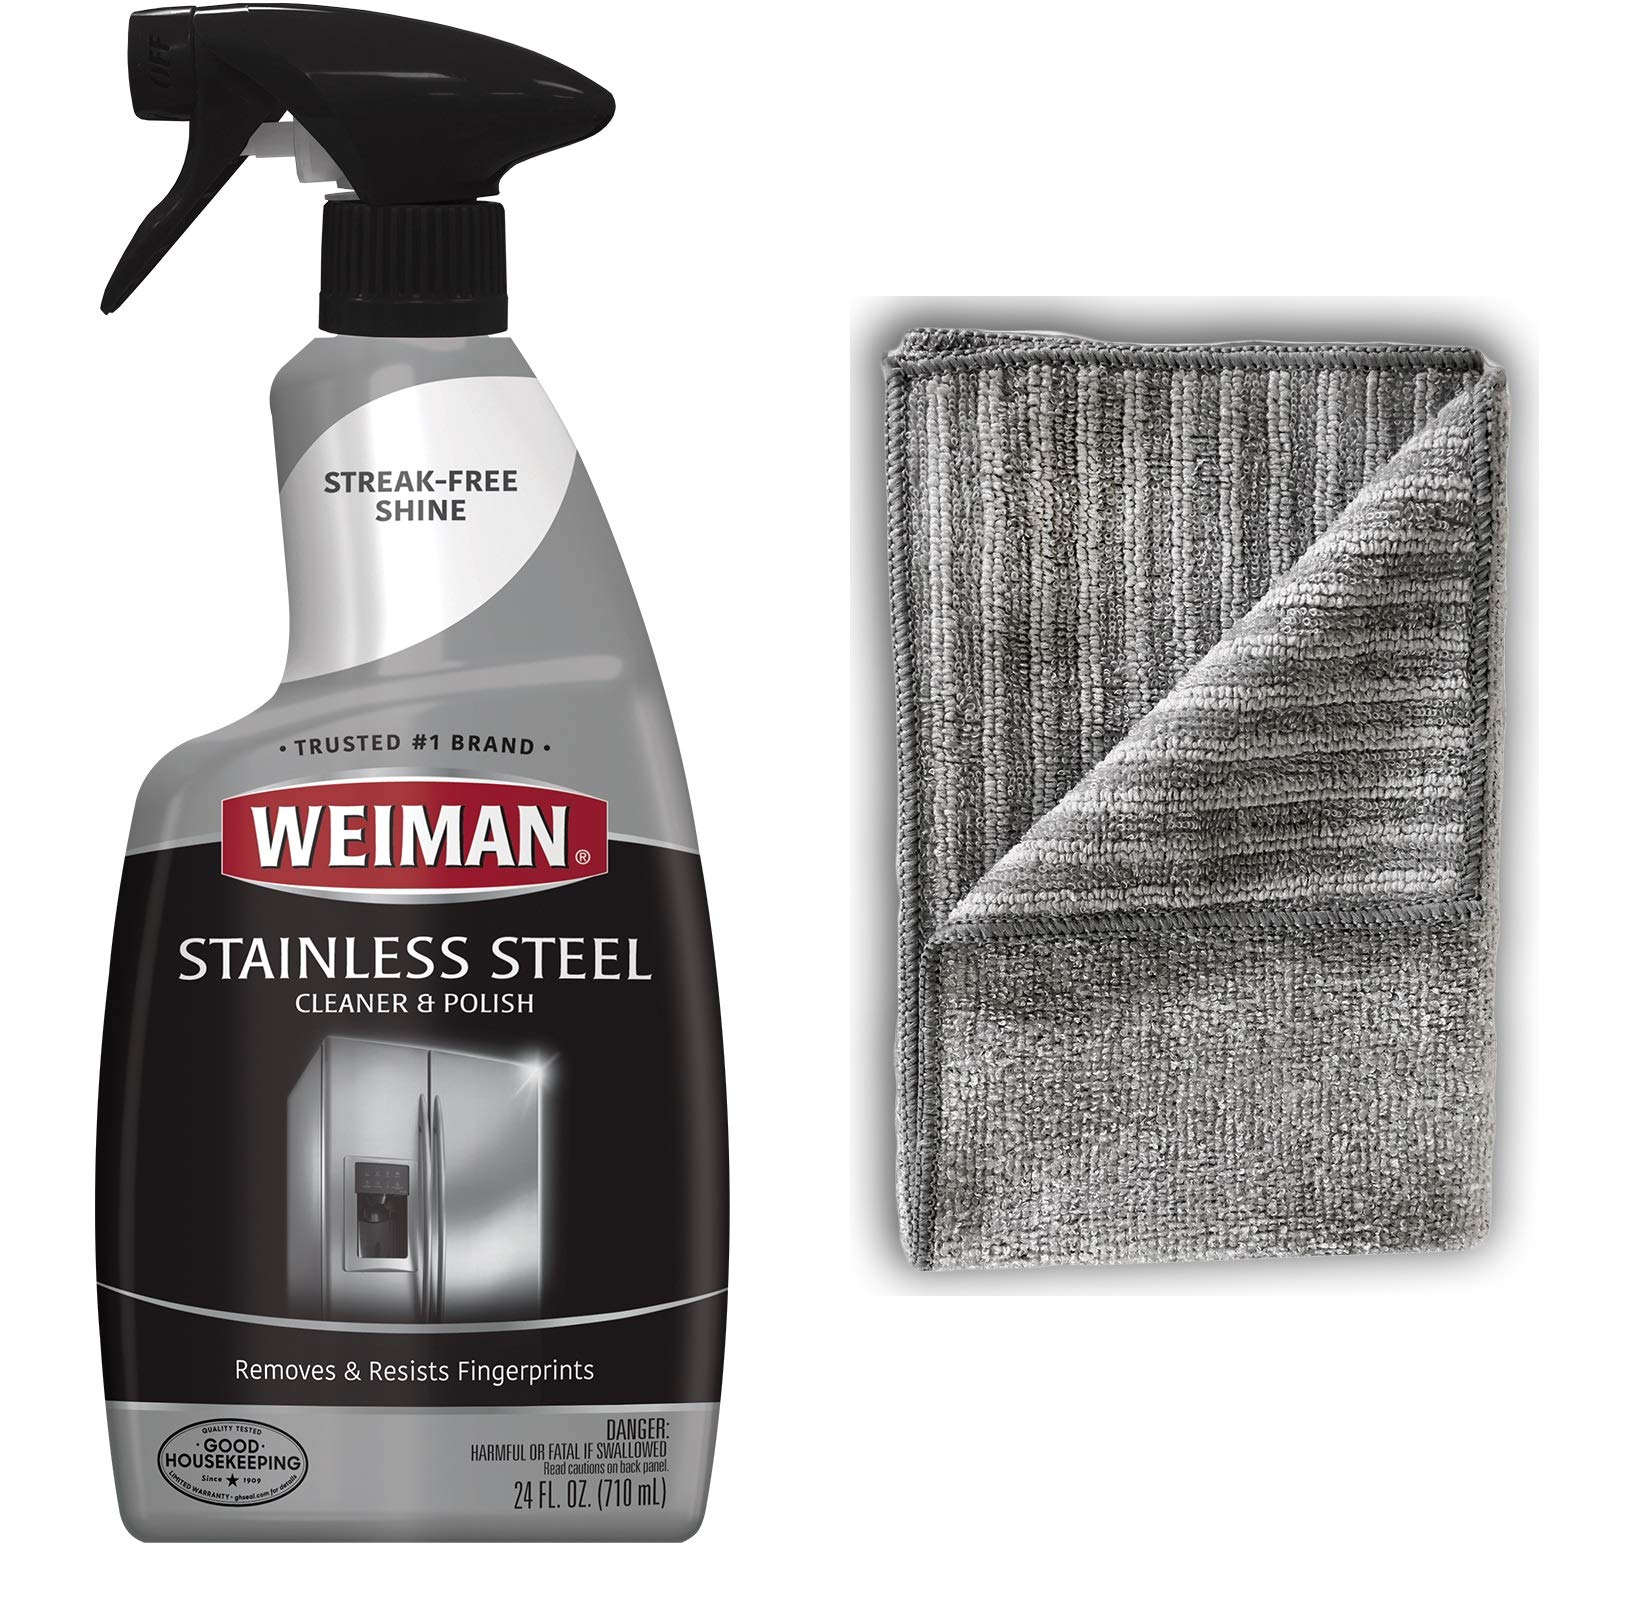 Weiman Stainless Steel Cleaner and Polish - 22 Ounces [Large Microfiber Cloth] - Appliance Surfaces Leave Behind A Brilliant Shine by Weiman